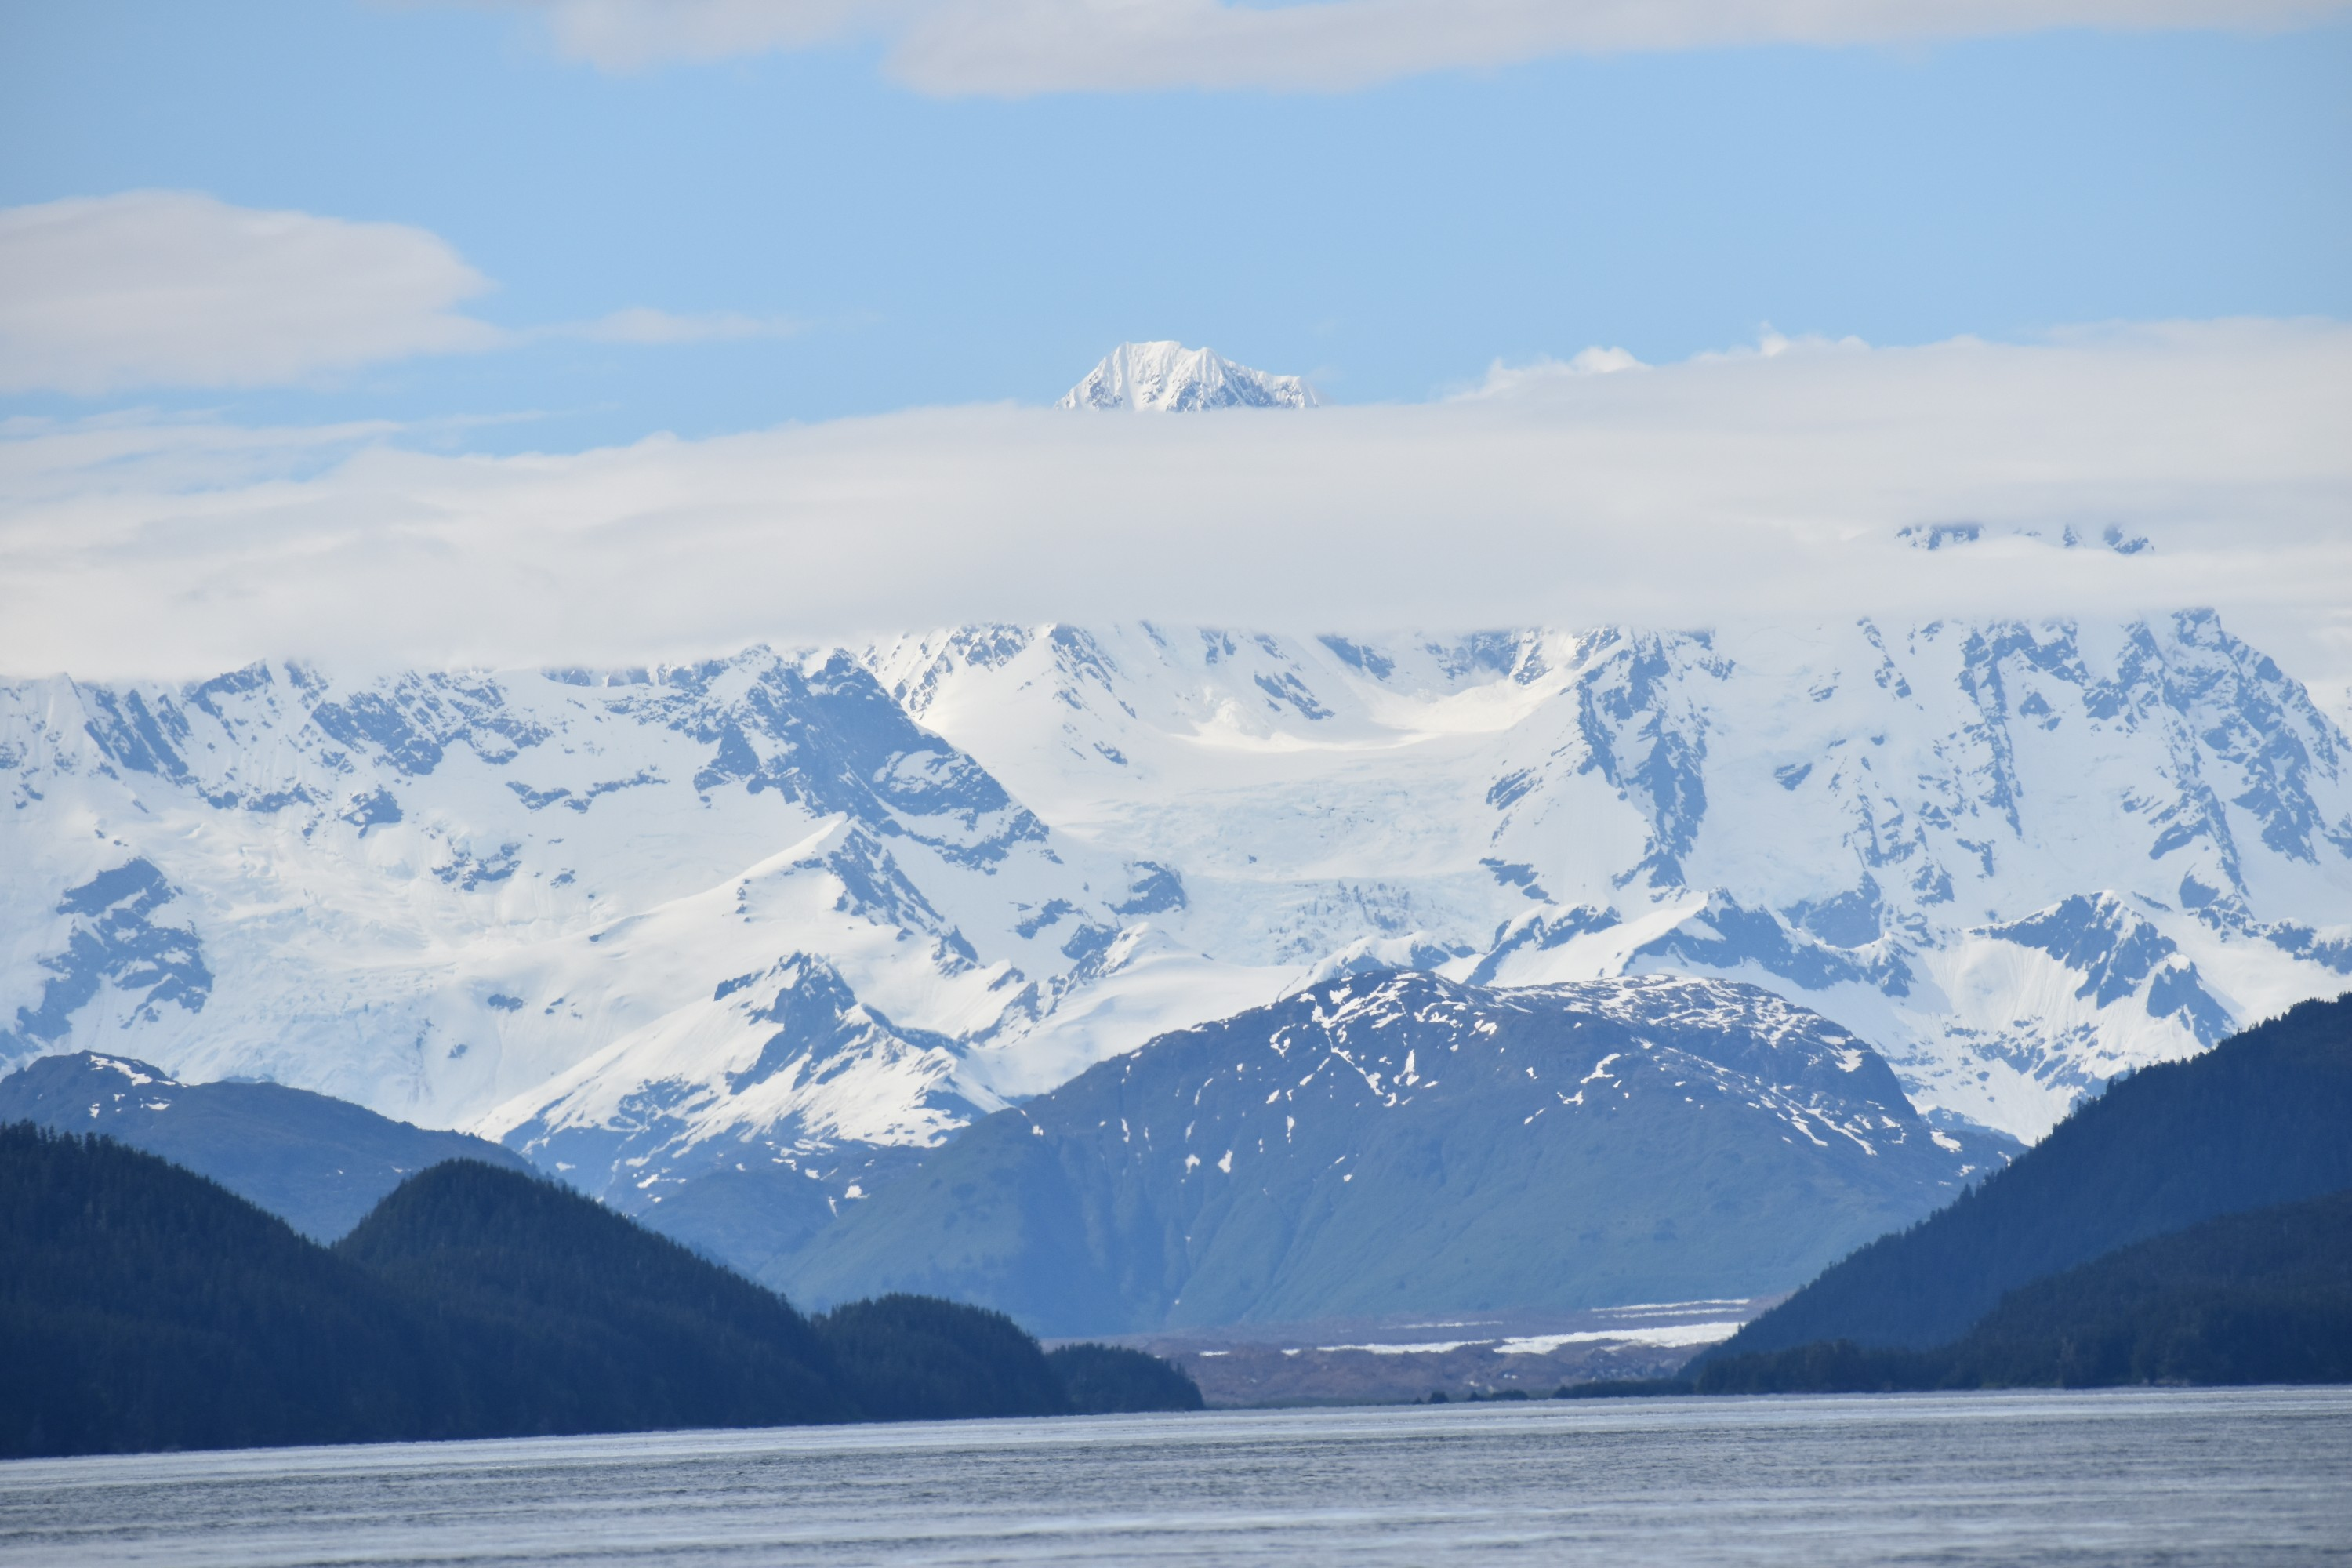 A view of one of Alaska's pristine national parks. (Photos by Ashley Gallagher/George Washington University)